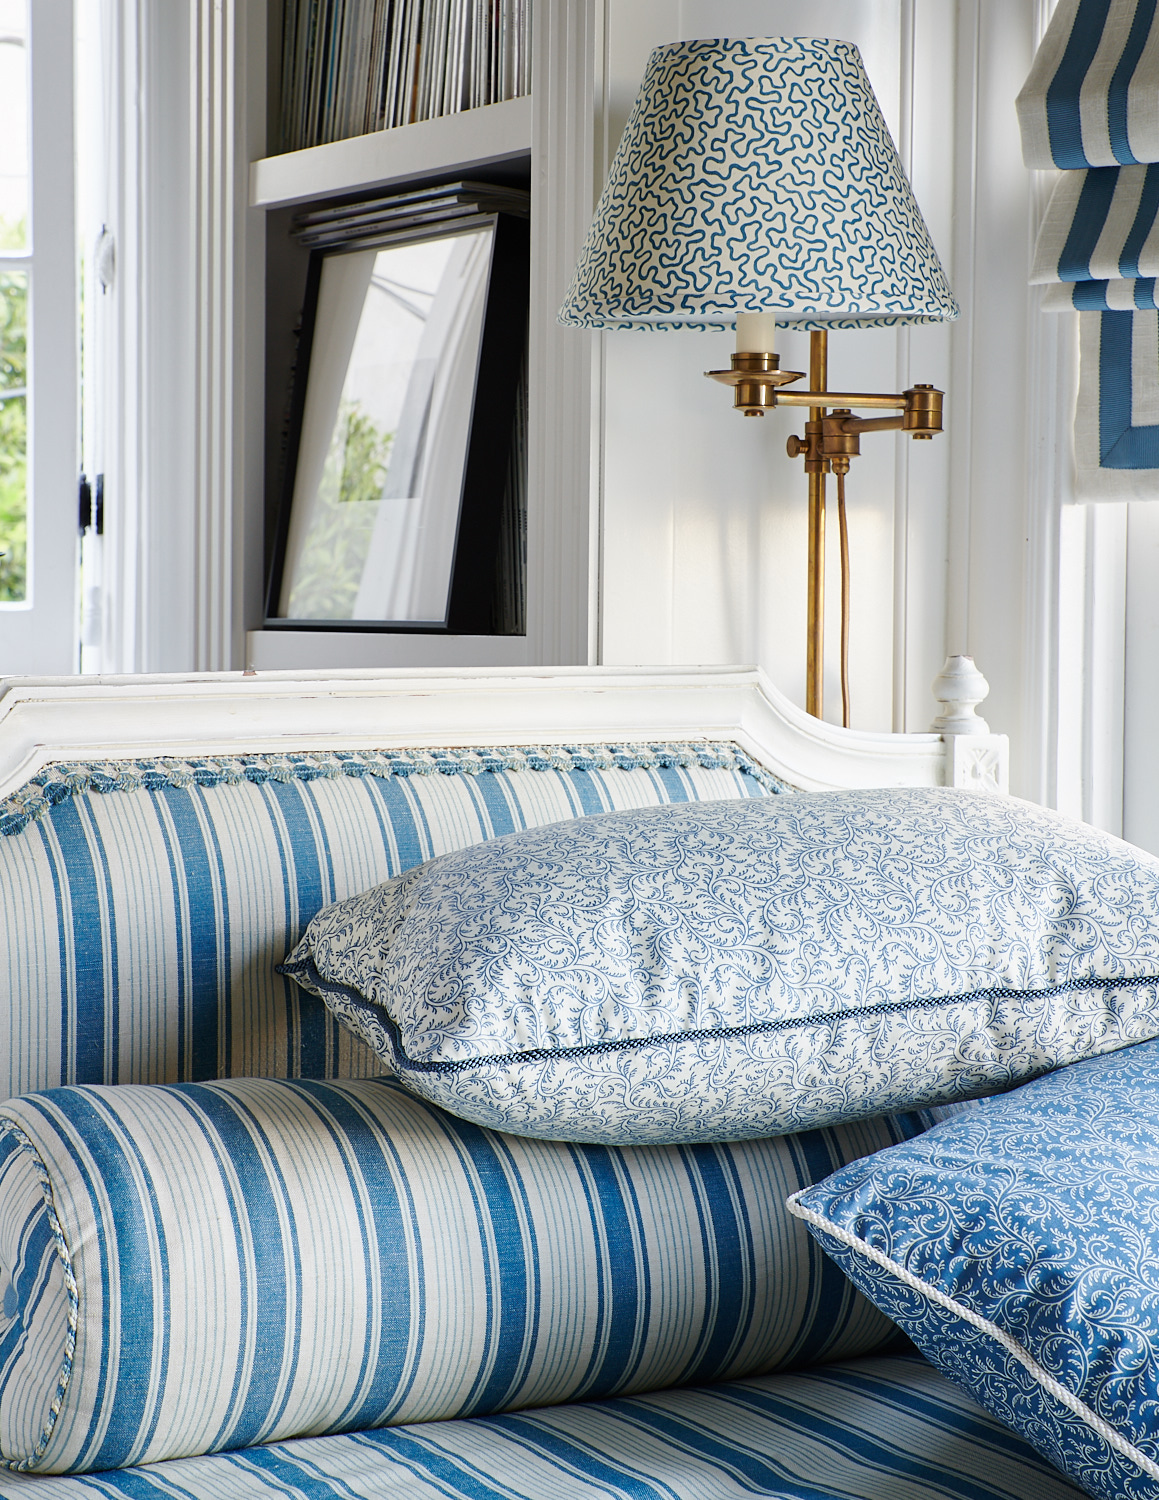 Detail of tasseled day bed with bolster pillows and matching pillows